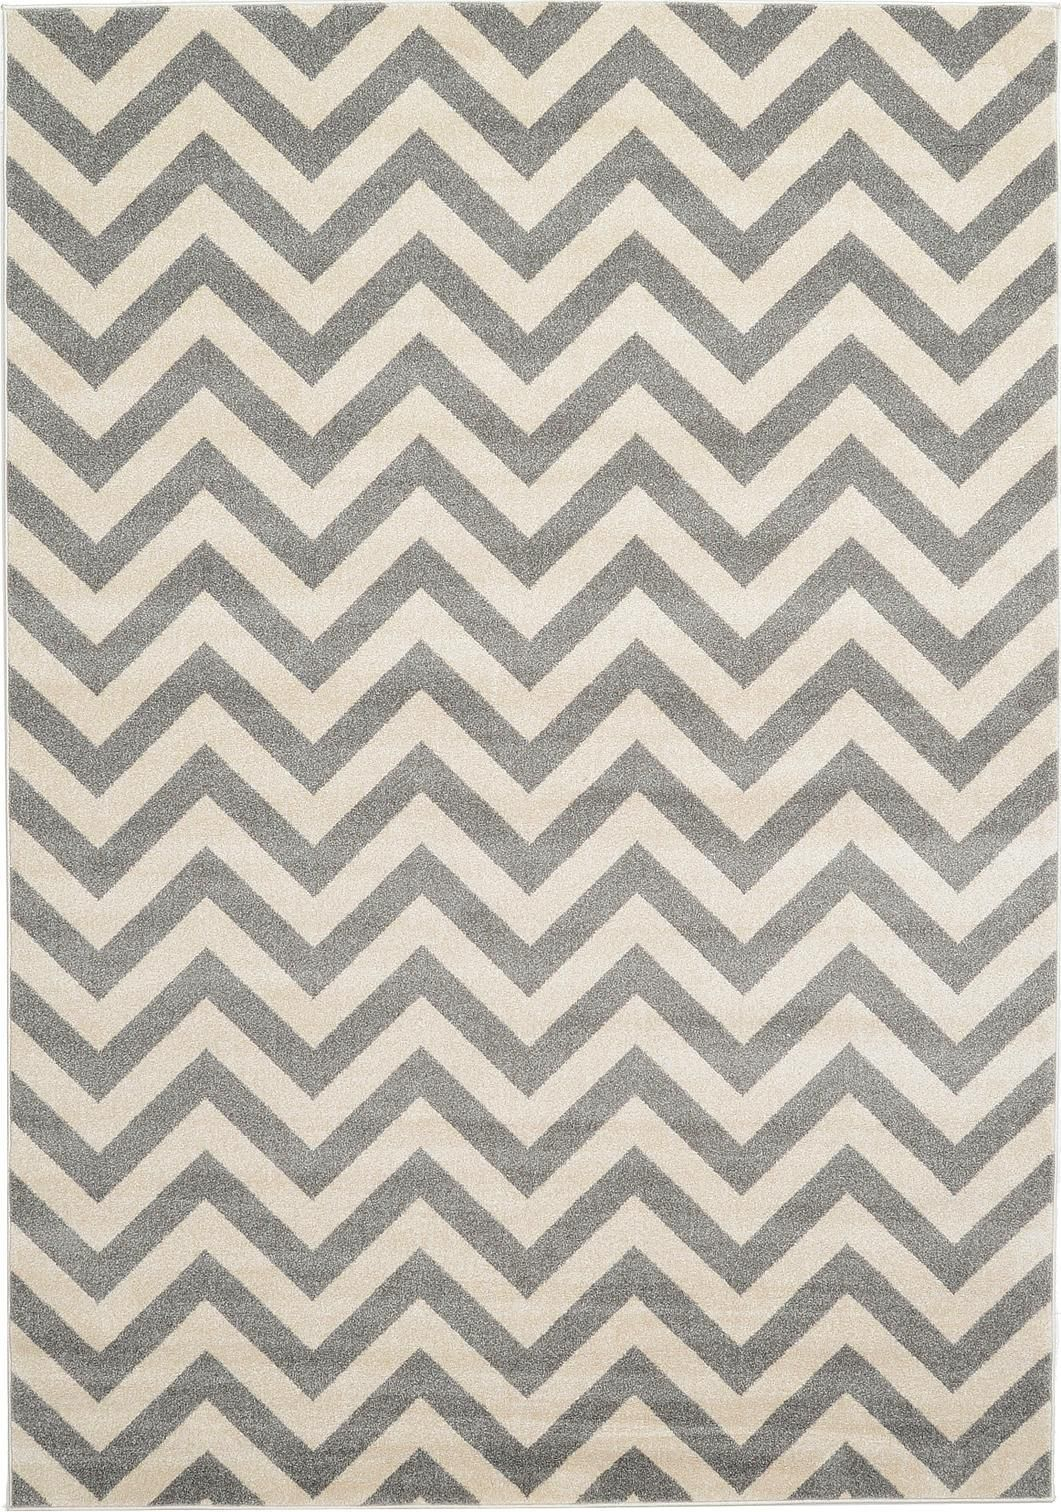 Gray 7 1 X 10 0 Chevron Rug Area Rugs Irugs Uk